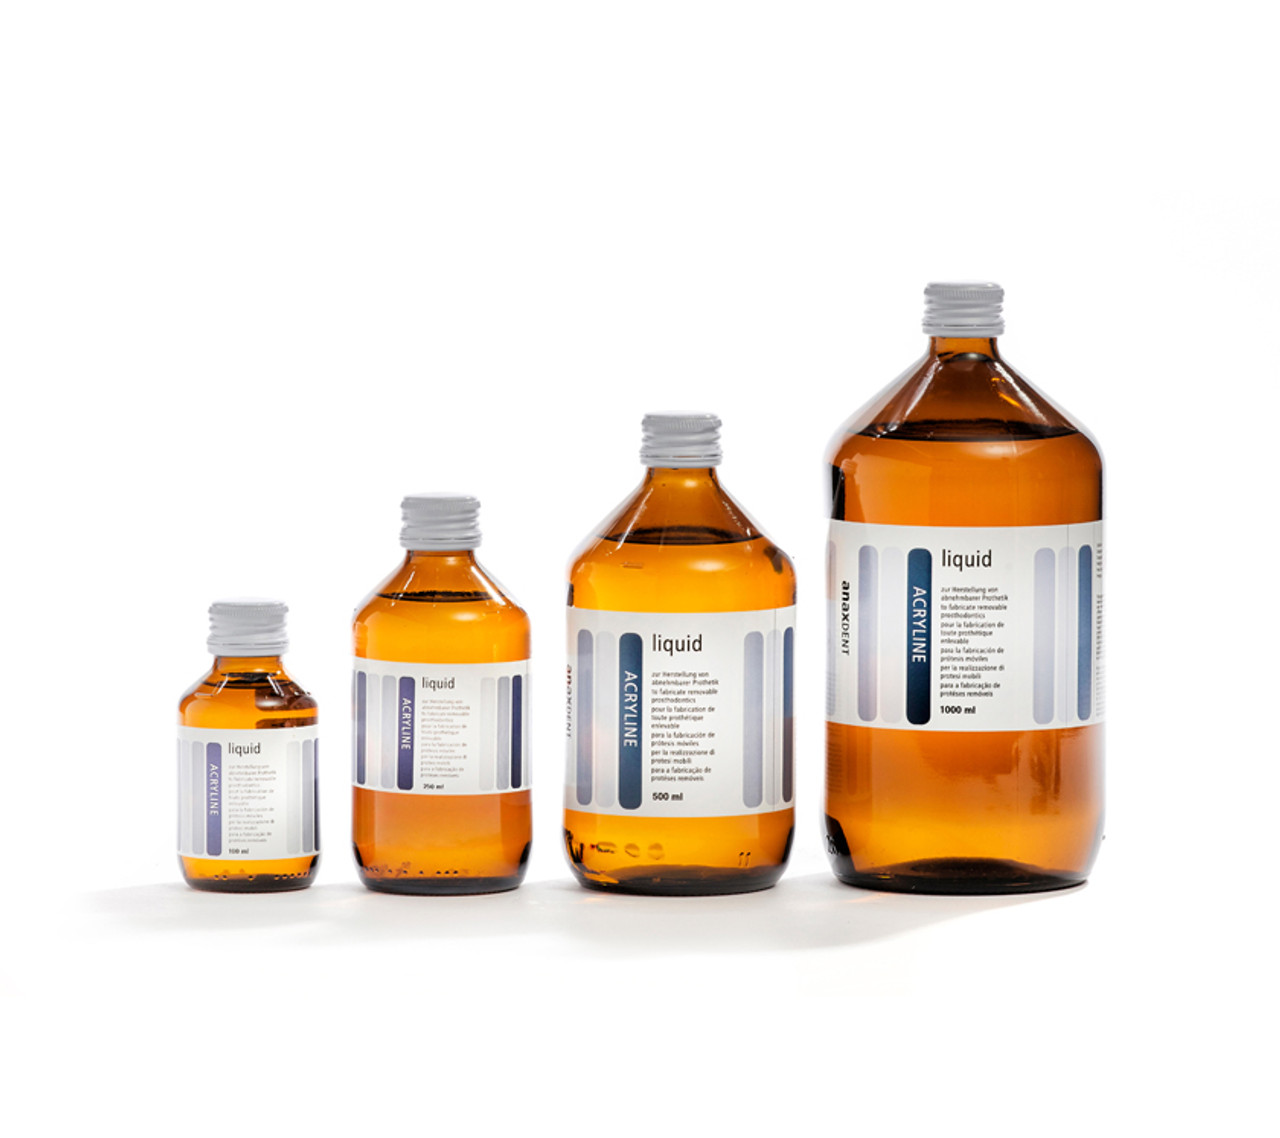 Acryline Liquid: Cold-cure